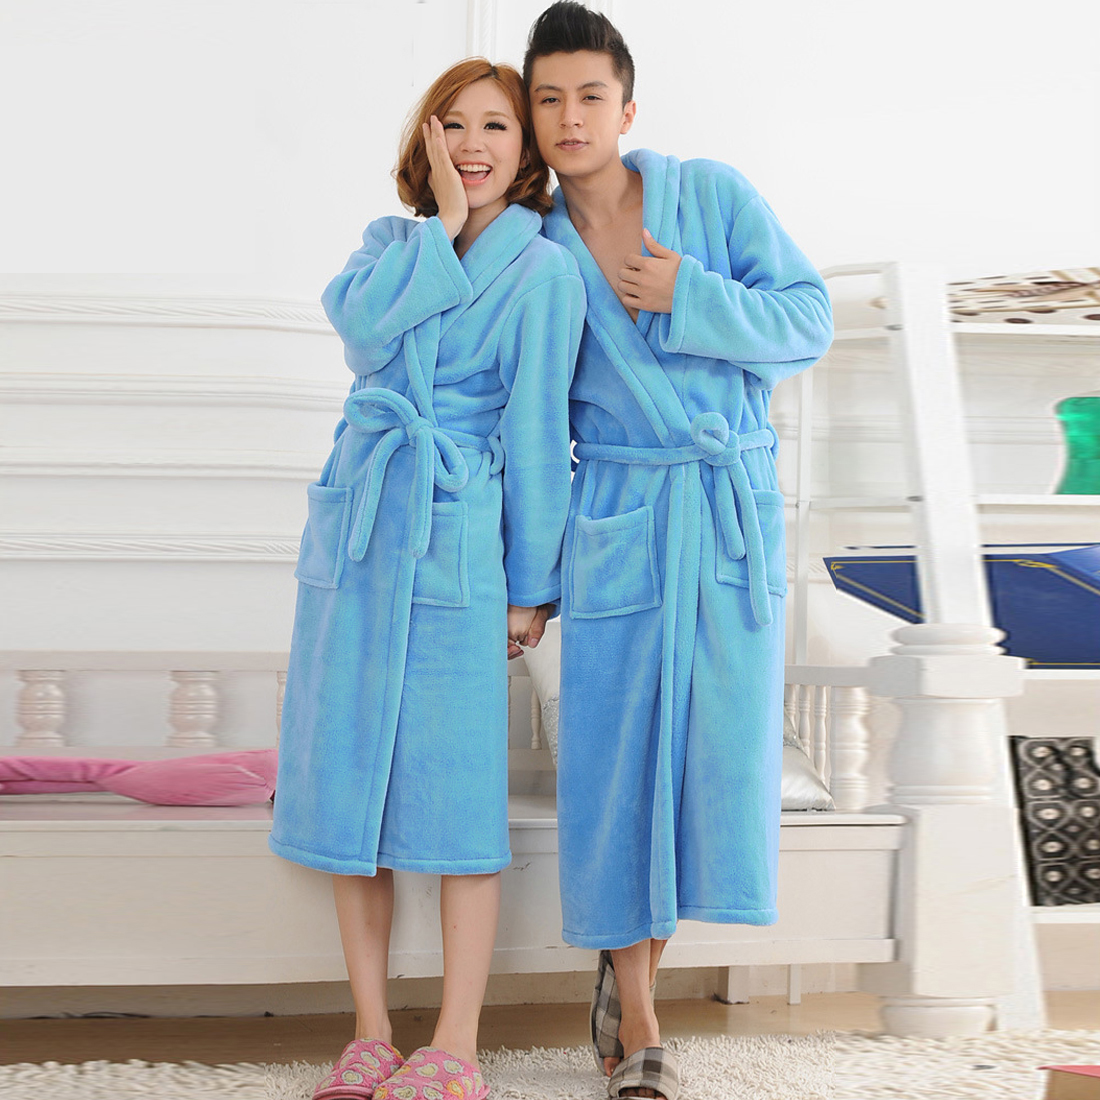 Women Men Flannel Bath Robe Sleepwear Autumn Winter Solid Seep Robe Couple Bathrobe Thick Warm Female Robe